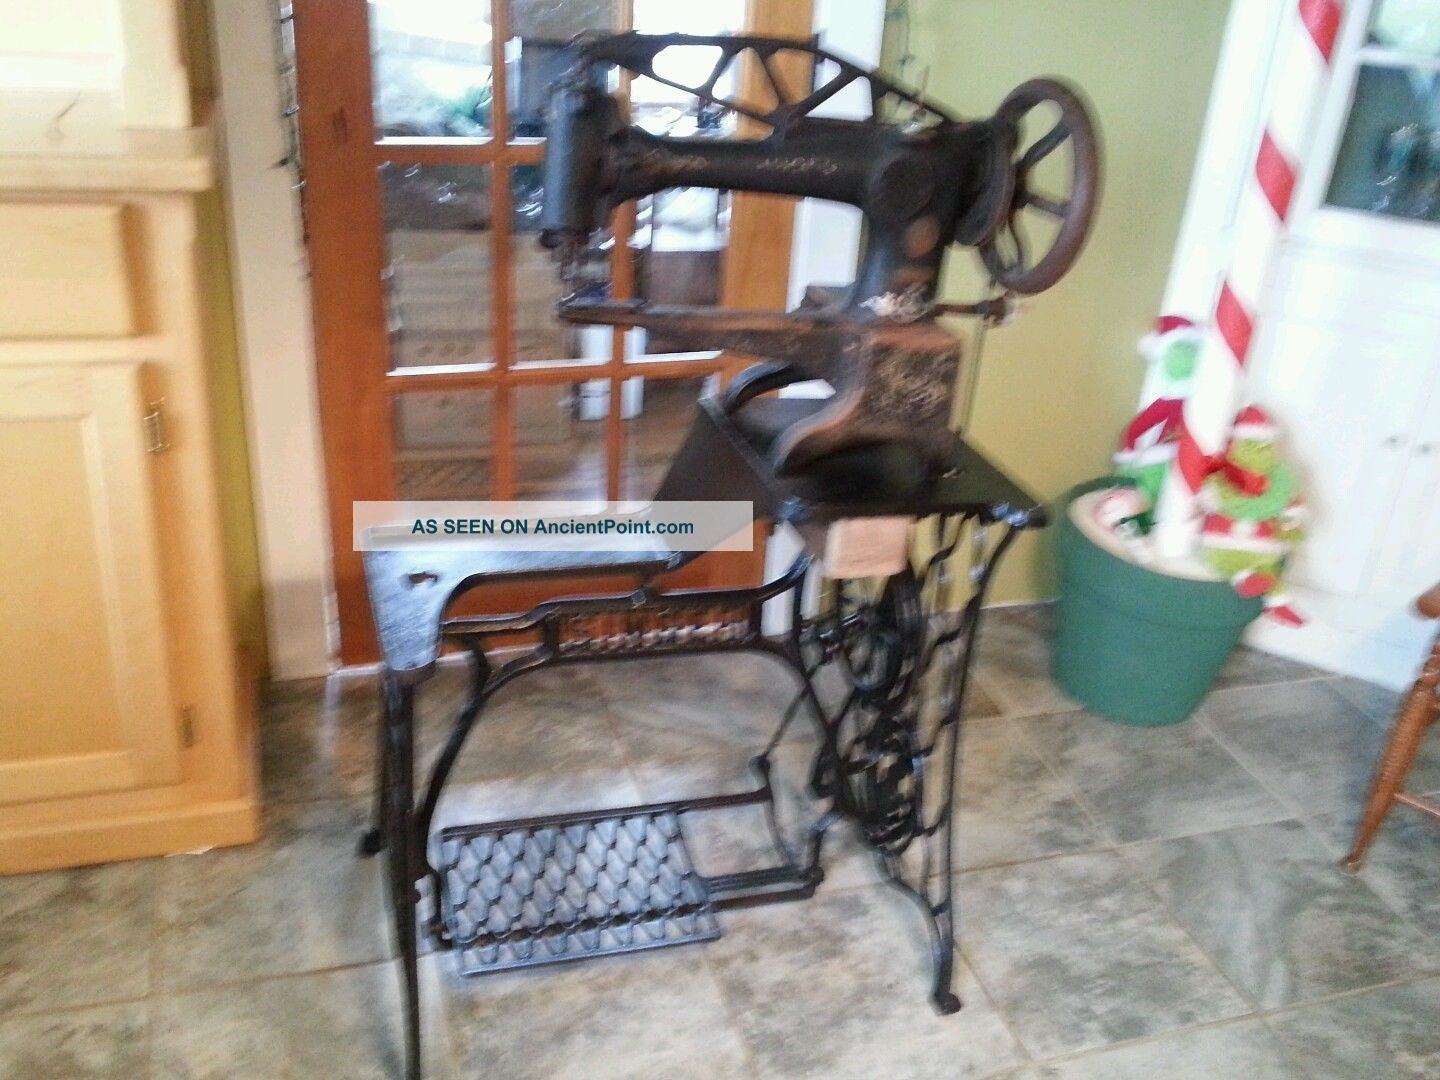 Antique Singer 29 - 4 Treadle Sewing Machine & Base Cobbler Leather 1900s Old Yarn Sewing Machines photo